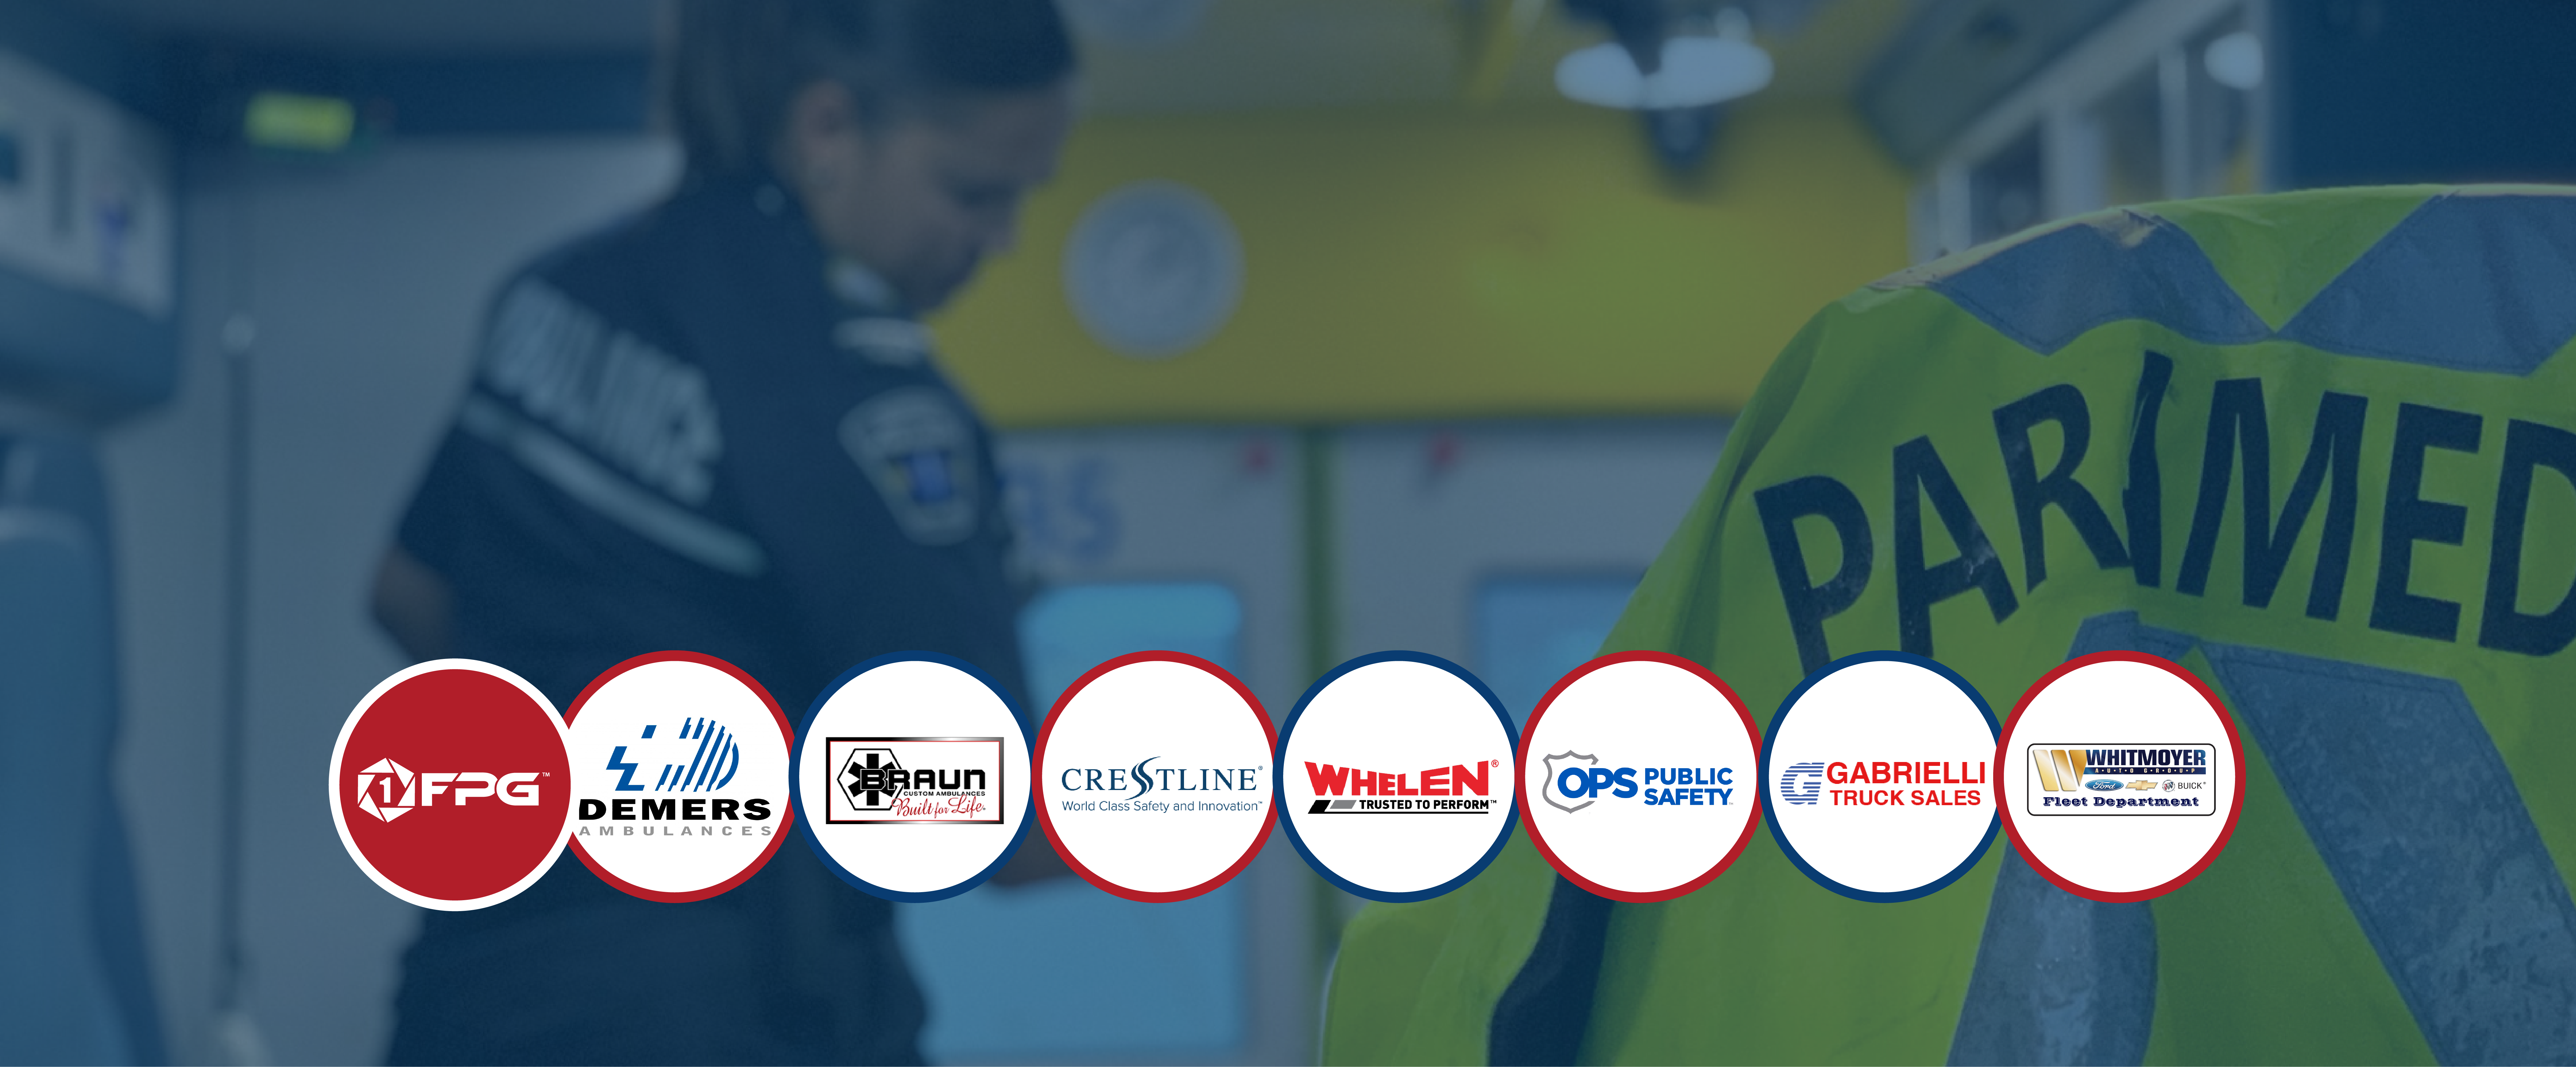 First Priority Emergency Vehicles Partners Dealers Suppliers-01-01-01-01